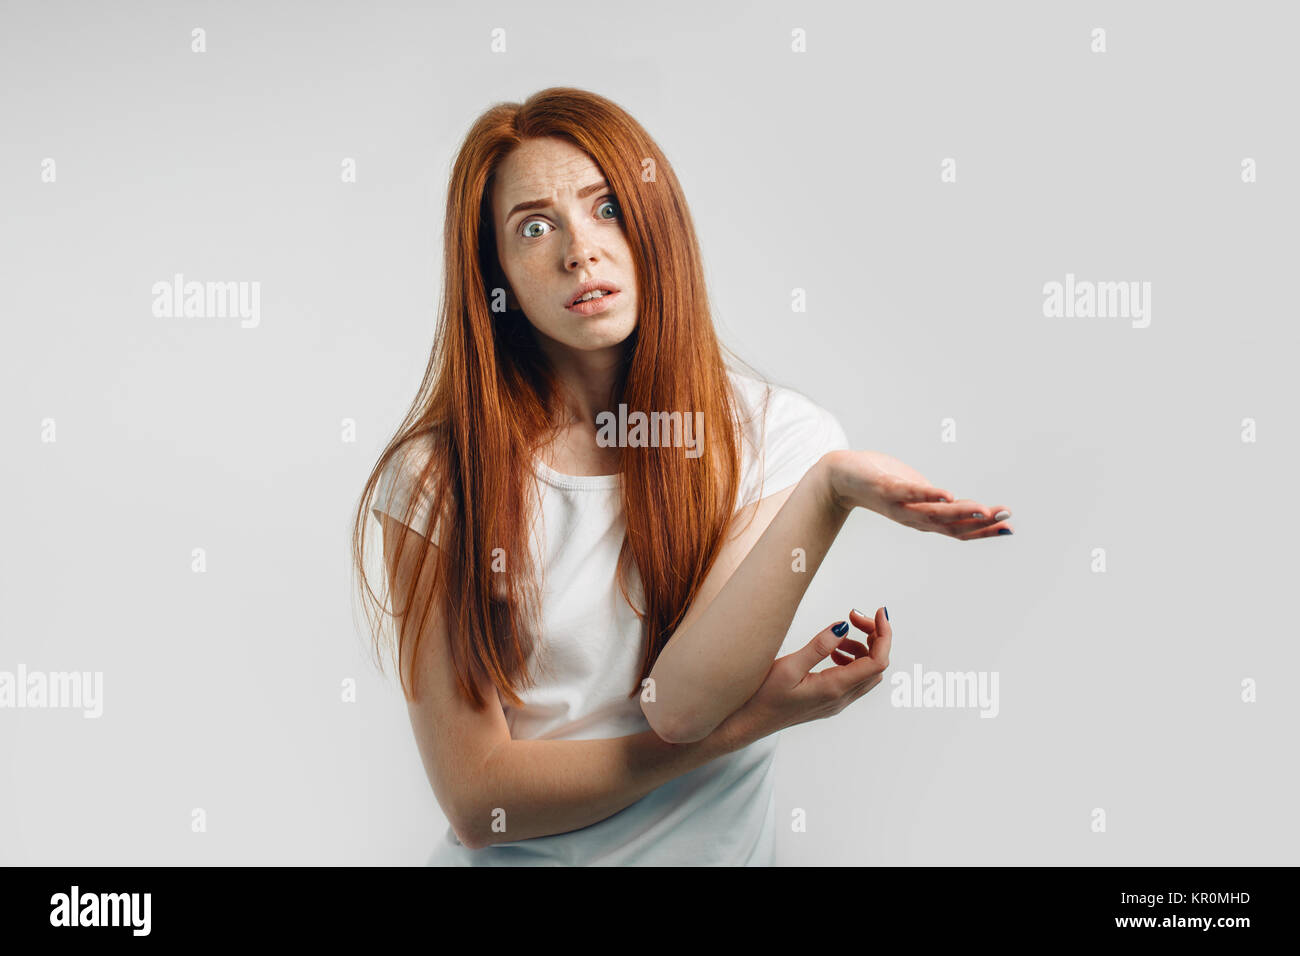 Puzzled and clueless young redhead woman with arms out - Stock Image